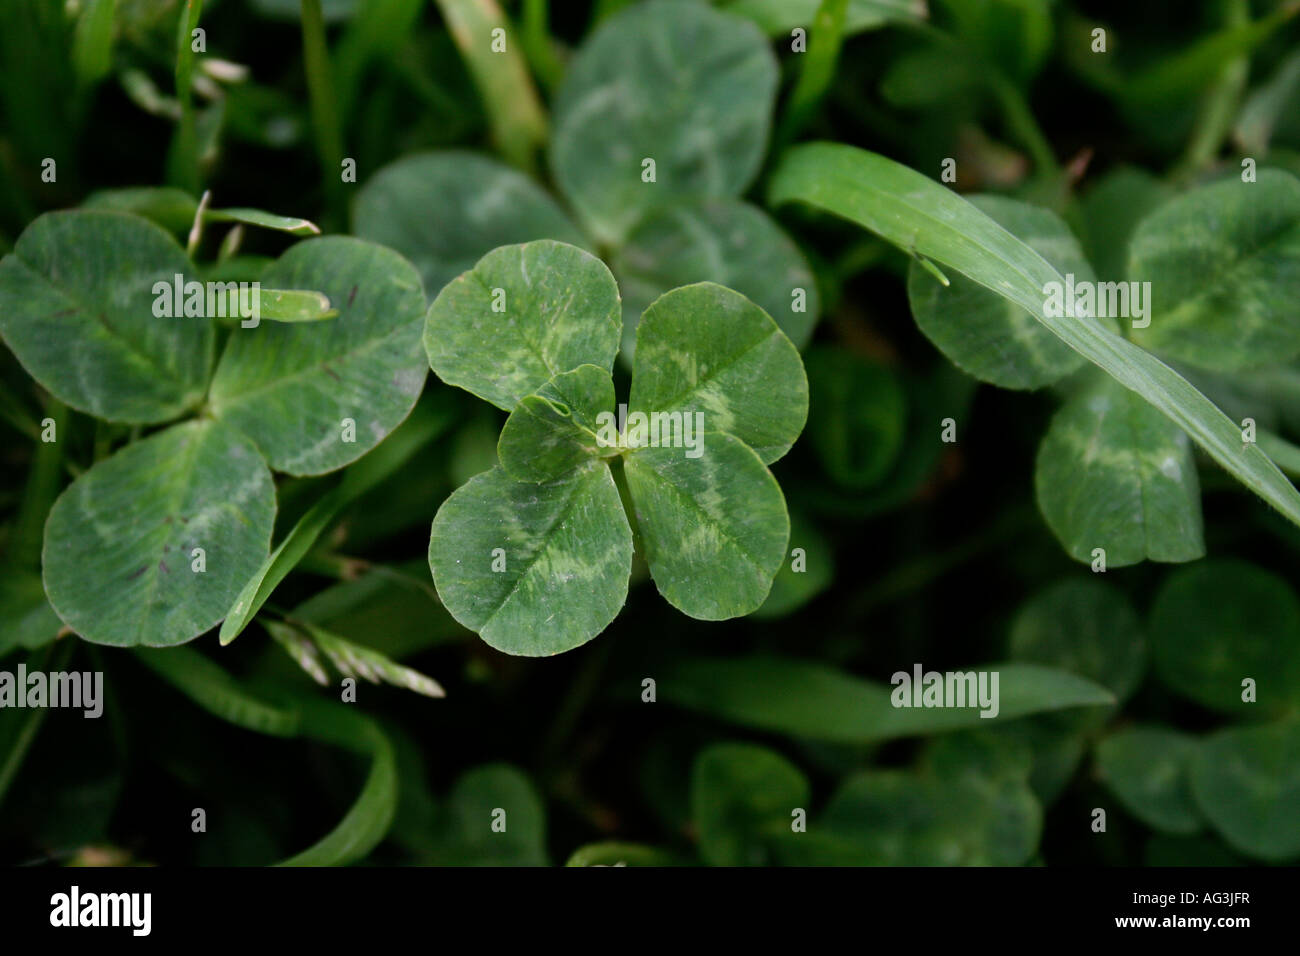 Five Leaf Clover Trifolium Repens Close Up Surrounded By Grass And